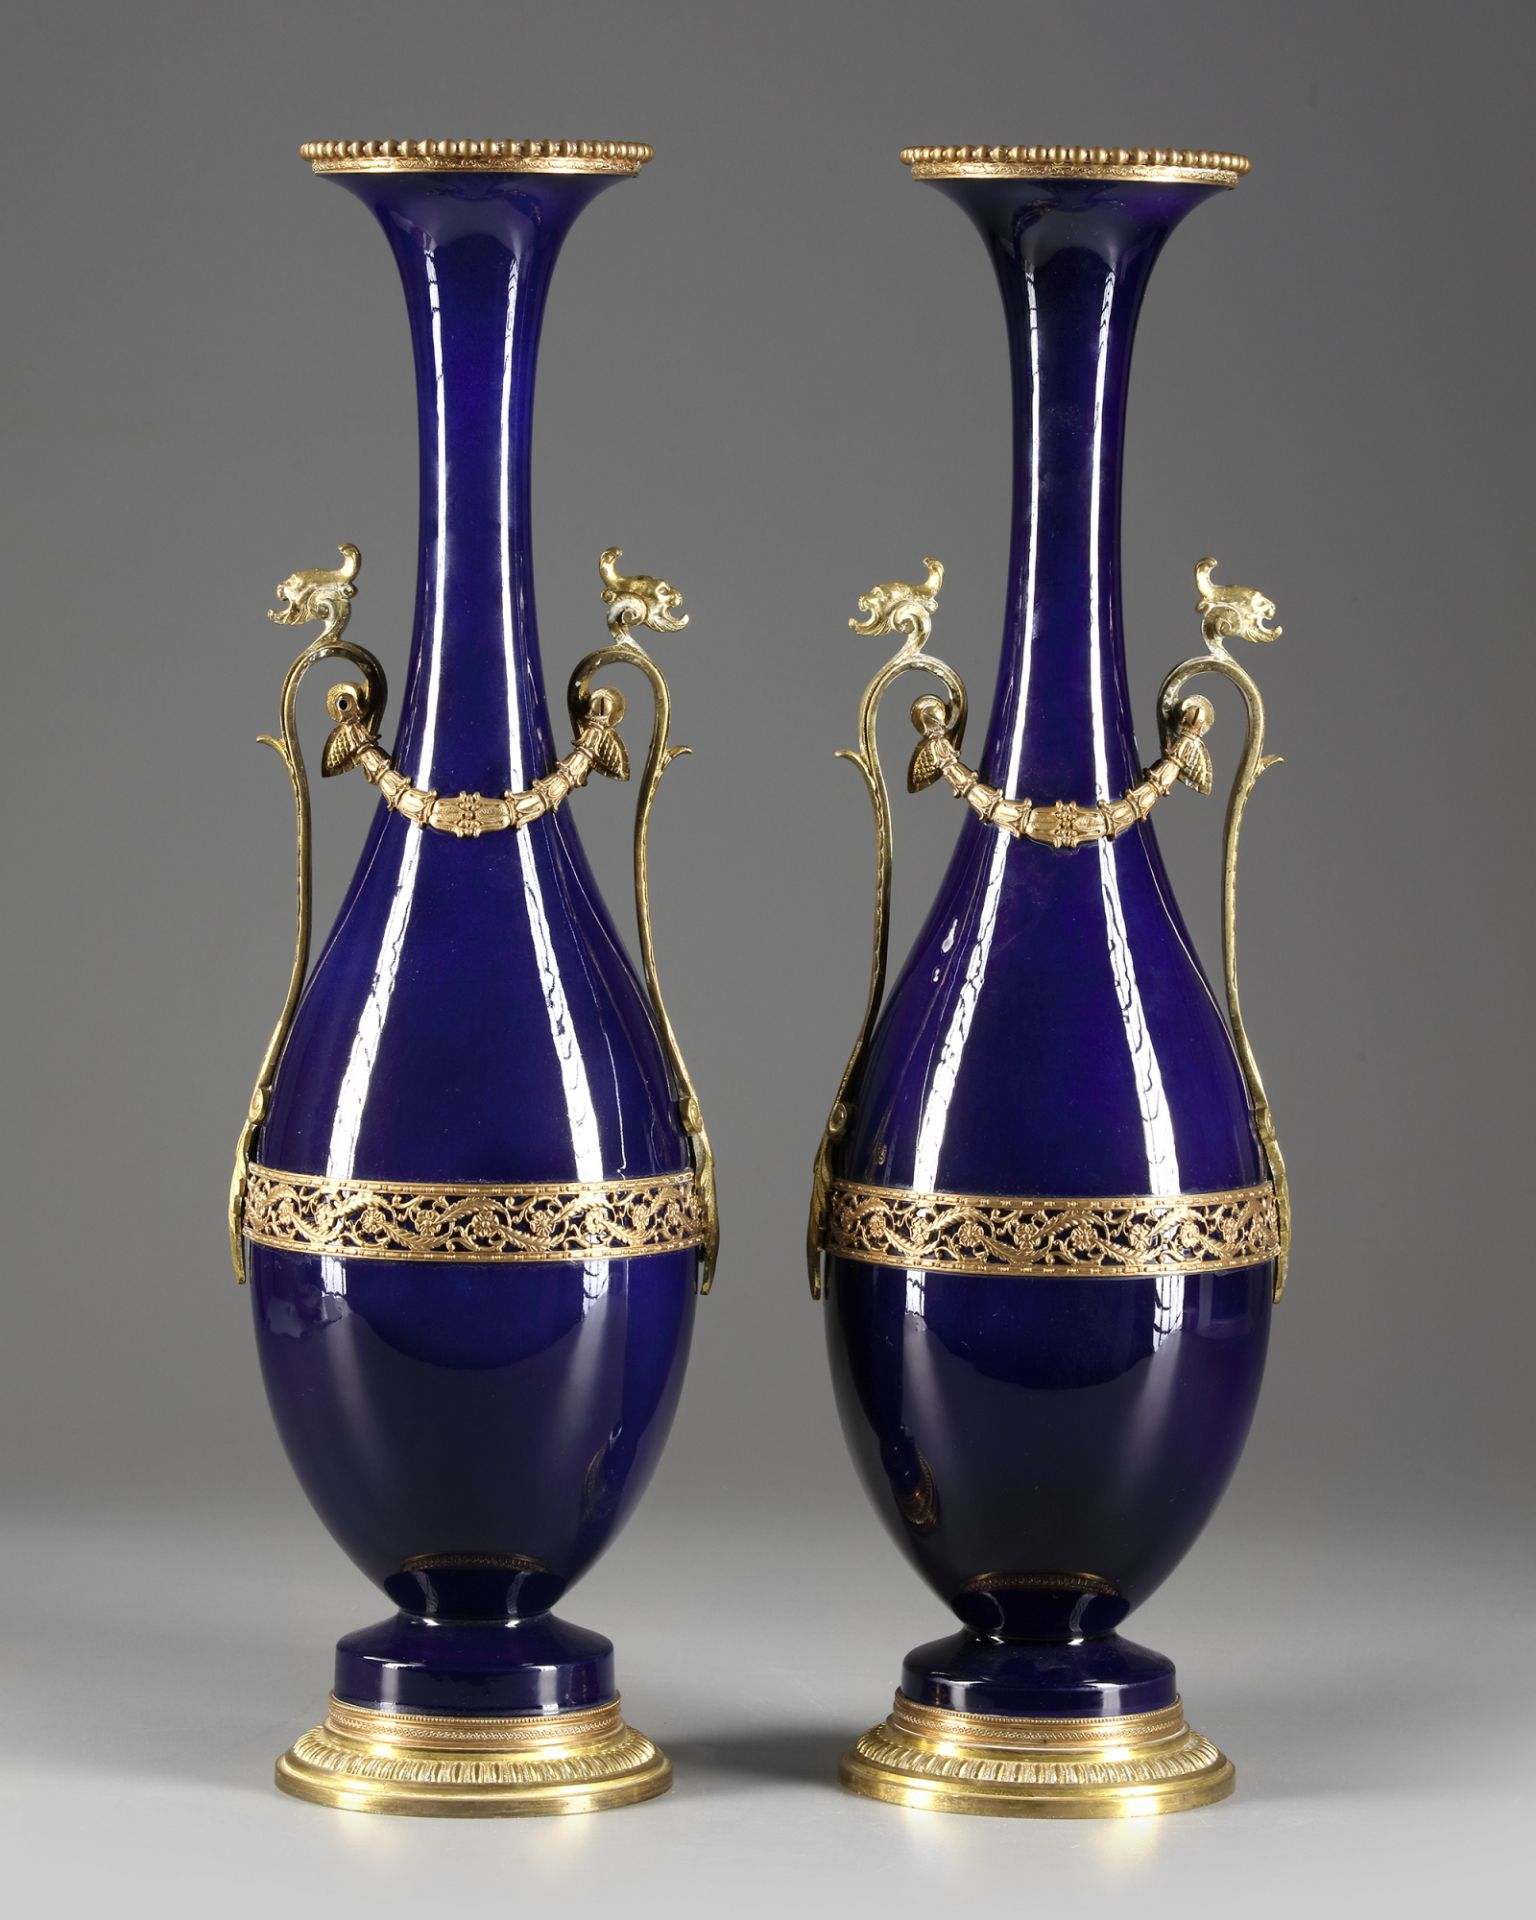 A PAIR OF FRENCH BLUE PORCELAIN VASES, CIRCA 1900 - Image 3 of 3